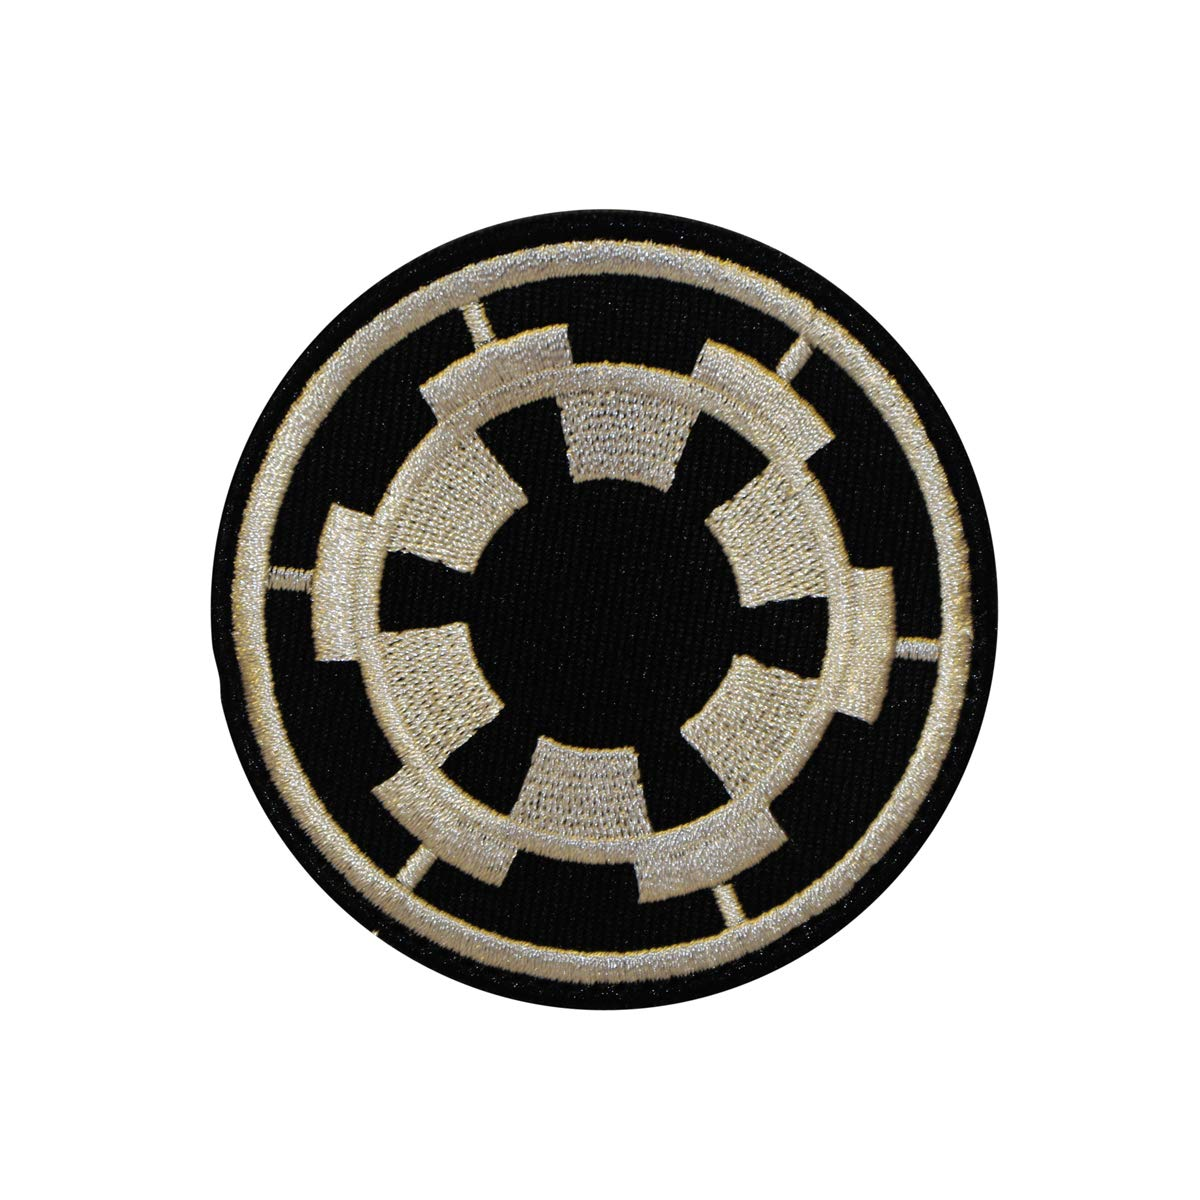 Cobra Tactical Solutions Imperiale Force Star Wars Toppa Ricamo Patch Cosplay Airsoft Paintball